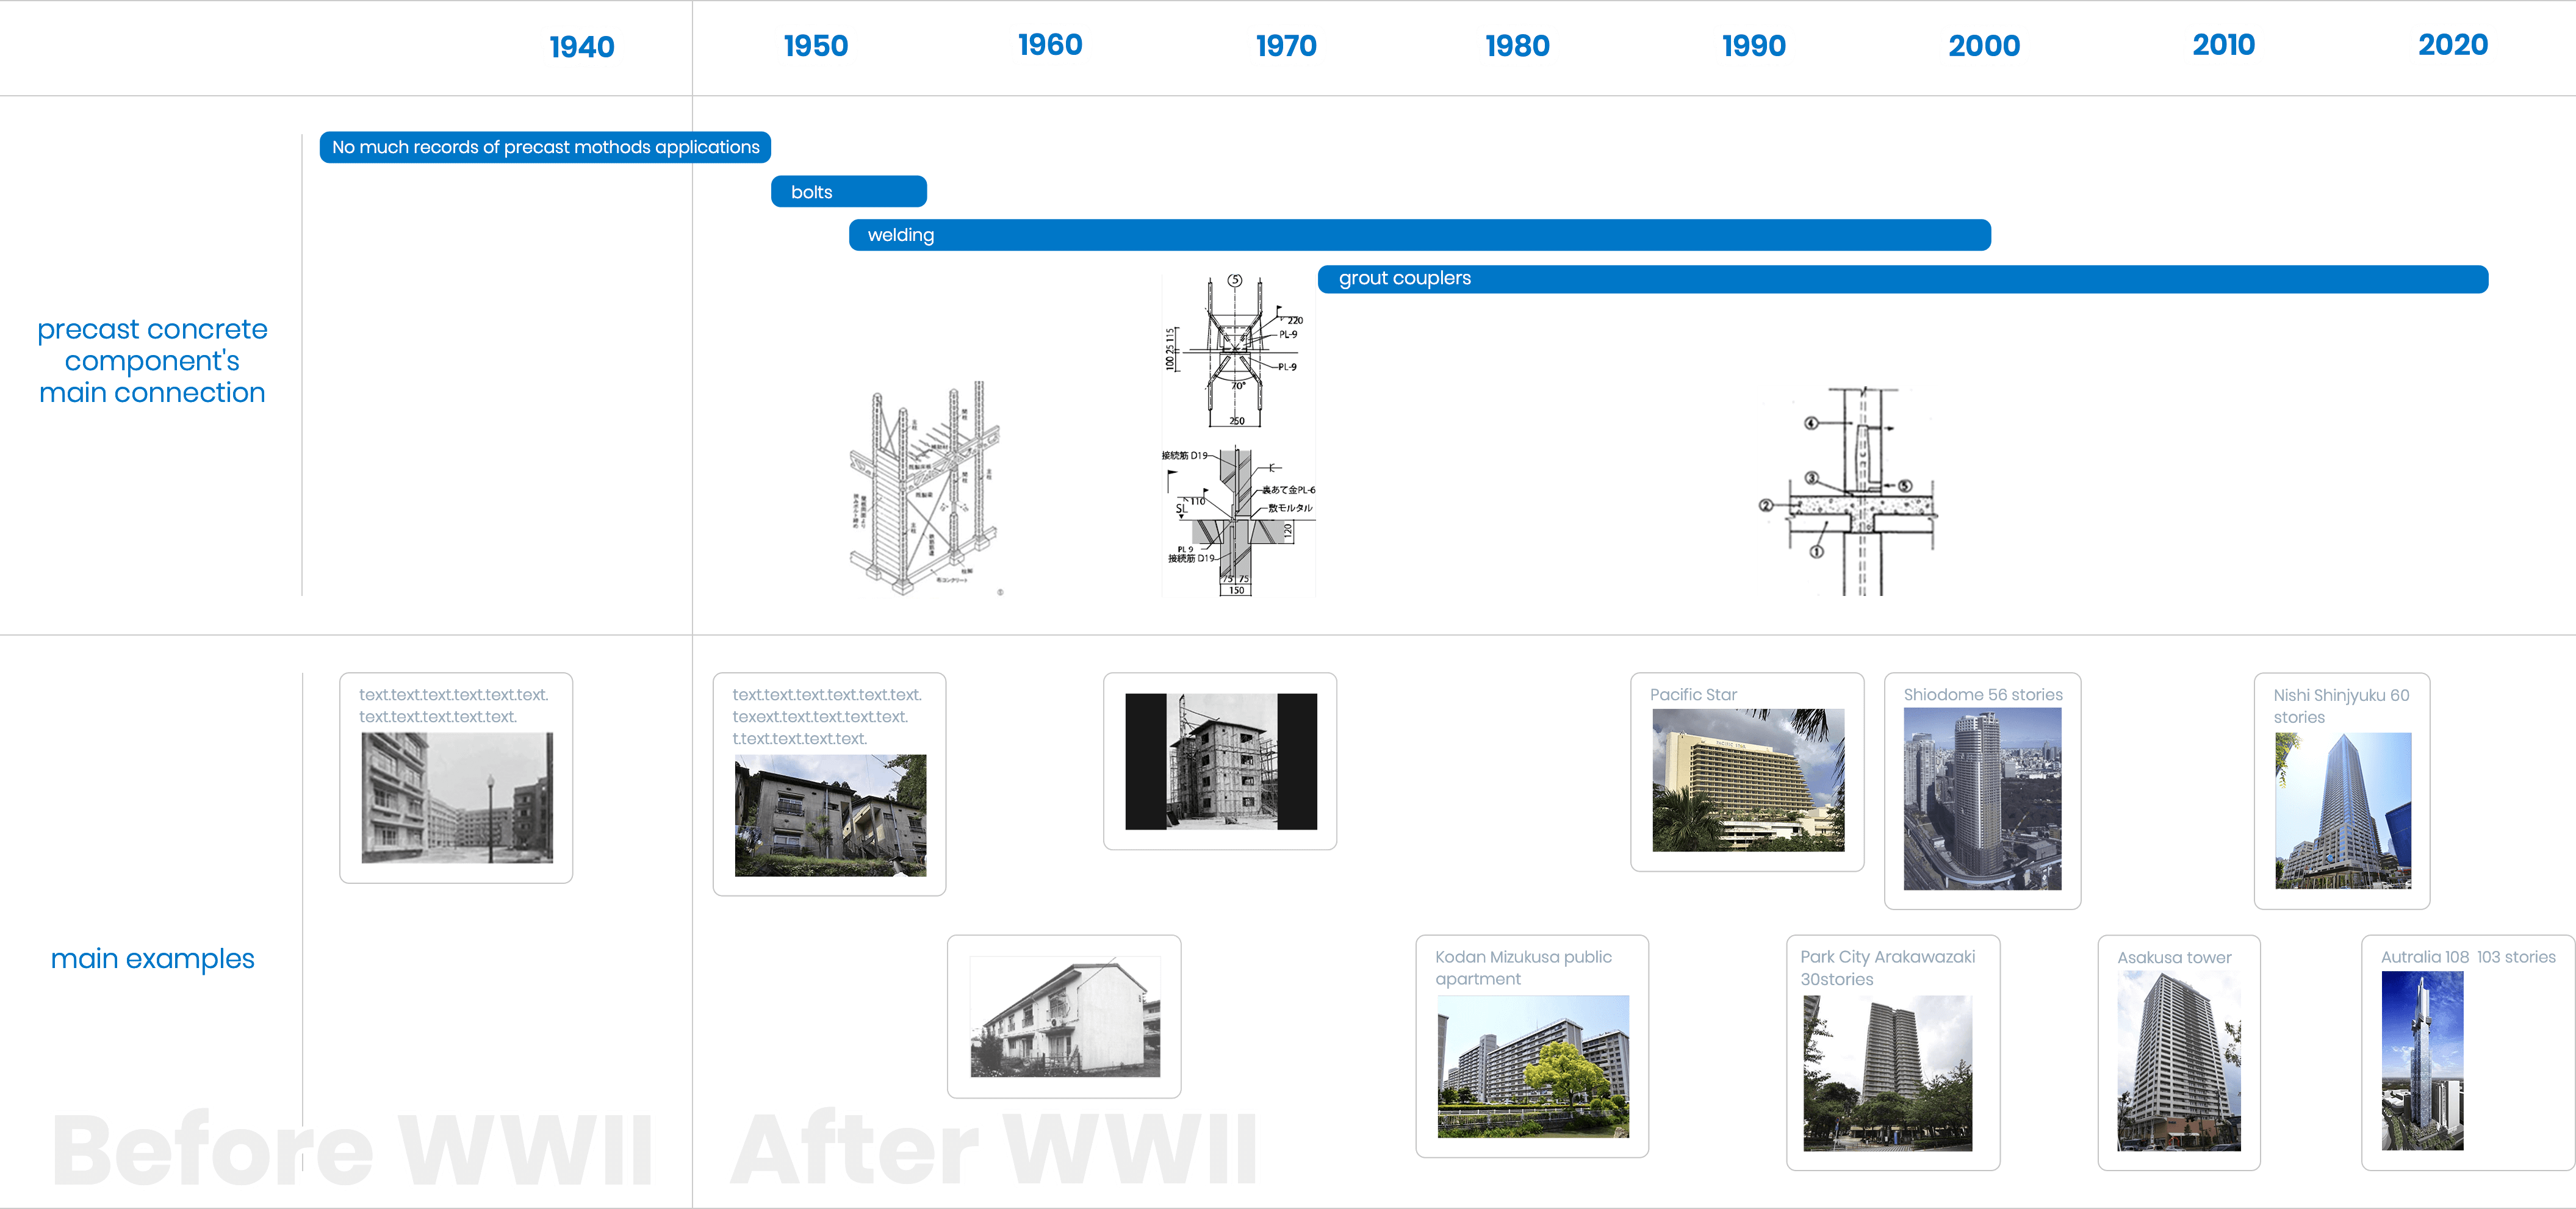 Splice Sleeve system and precast concrete connection history in Japan